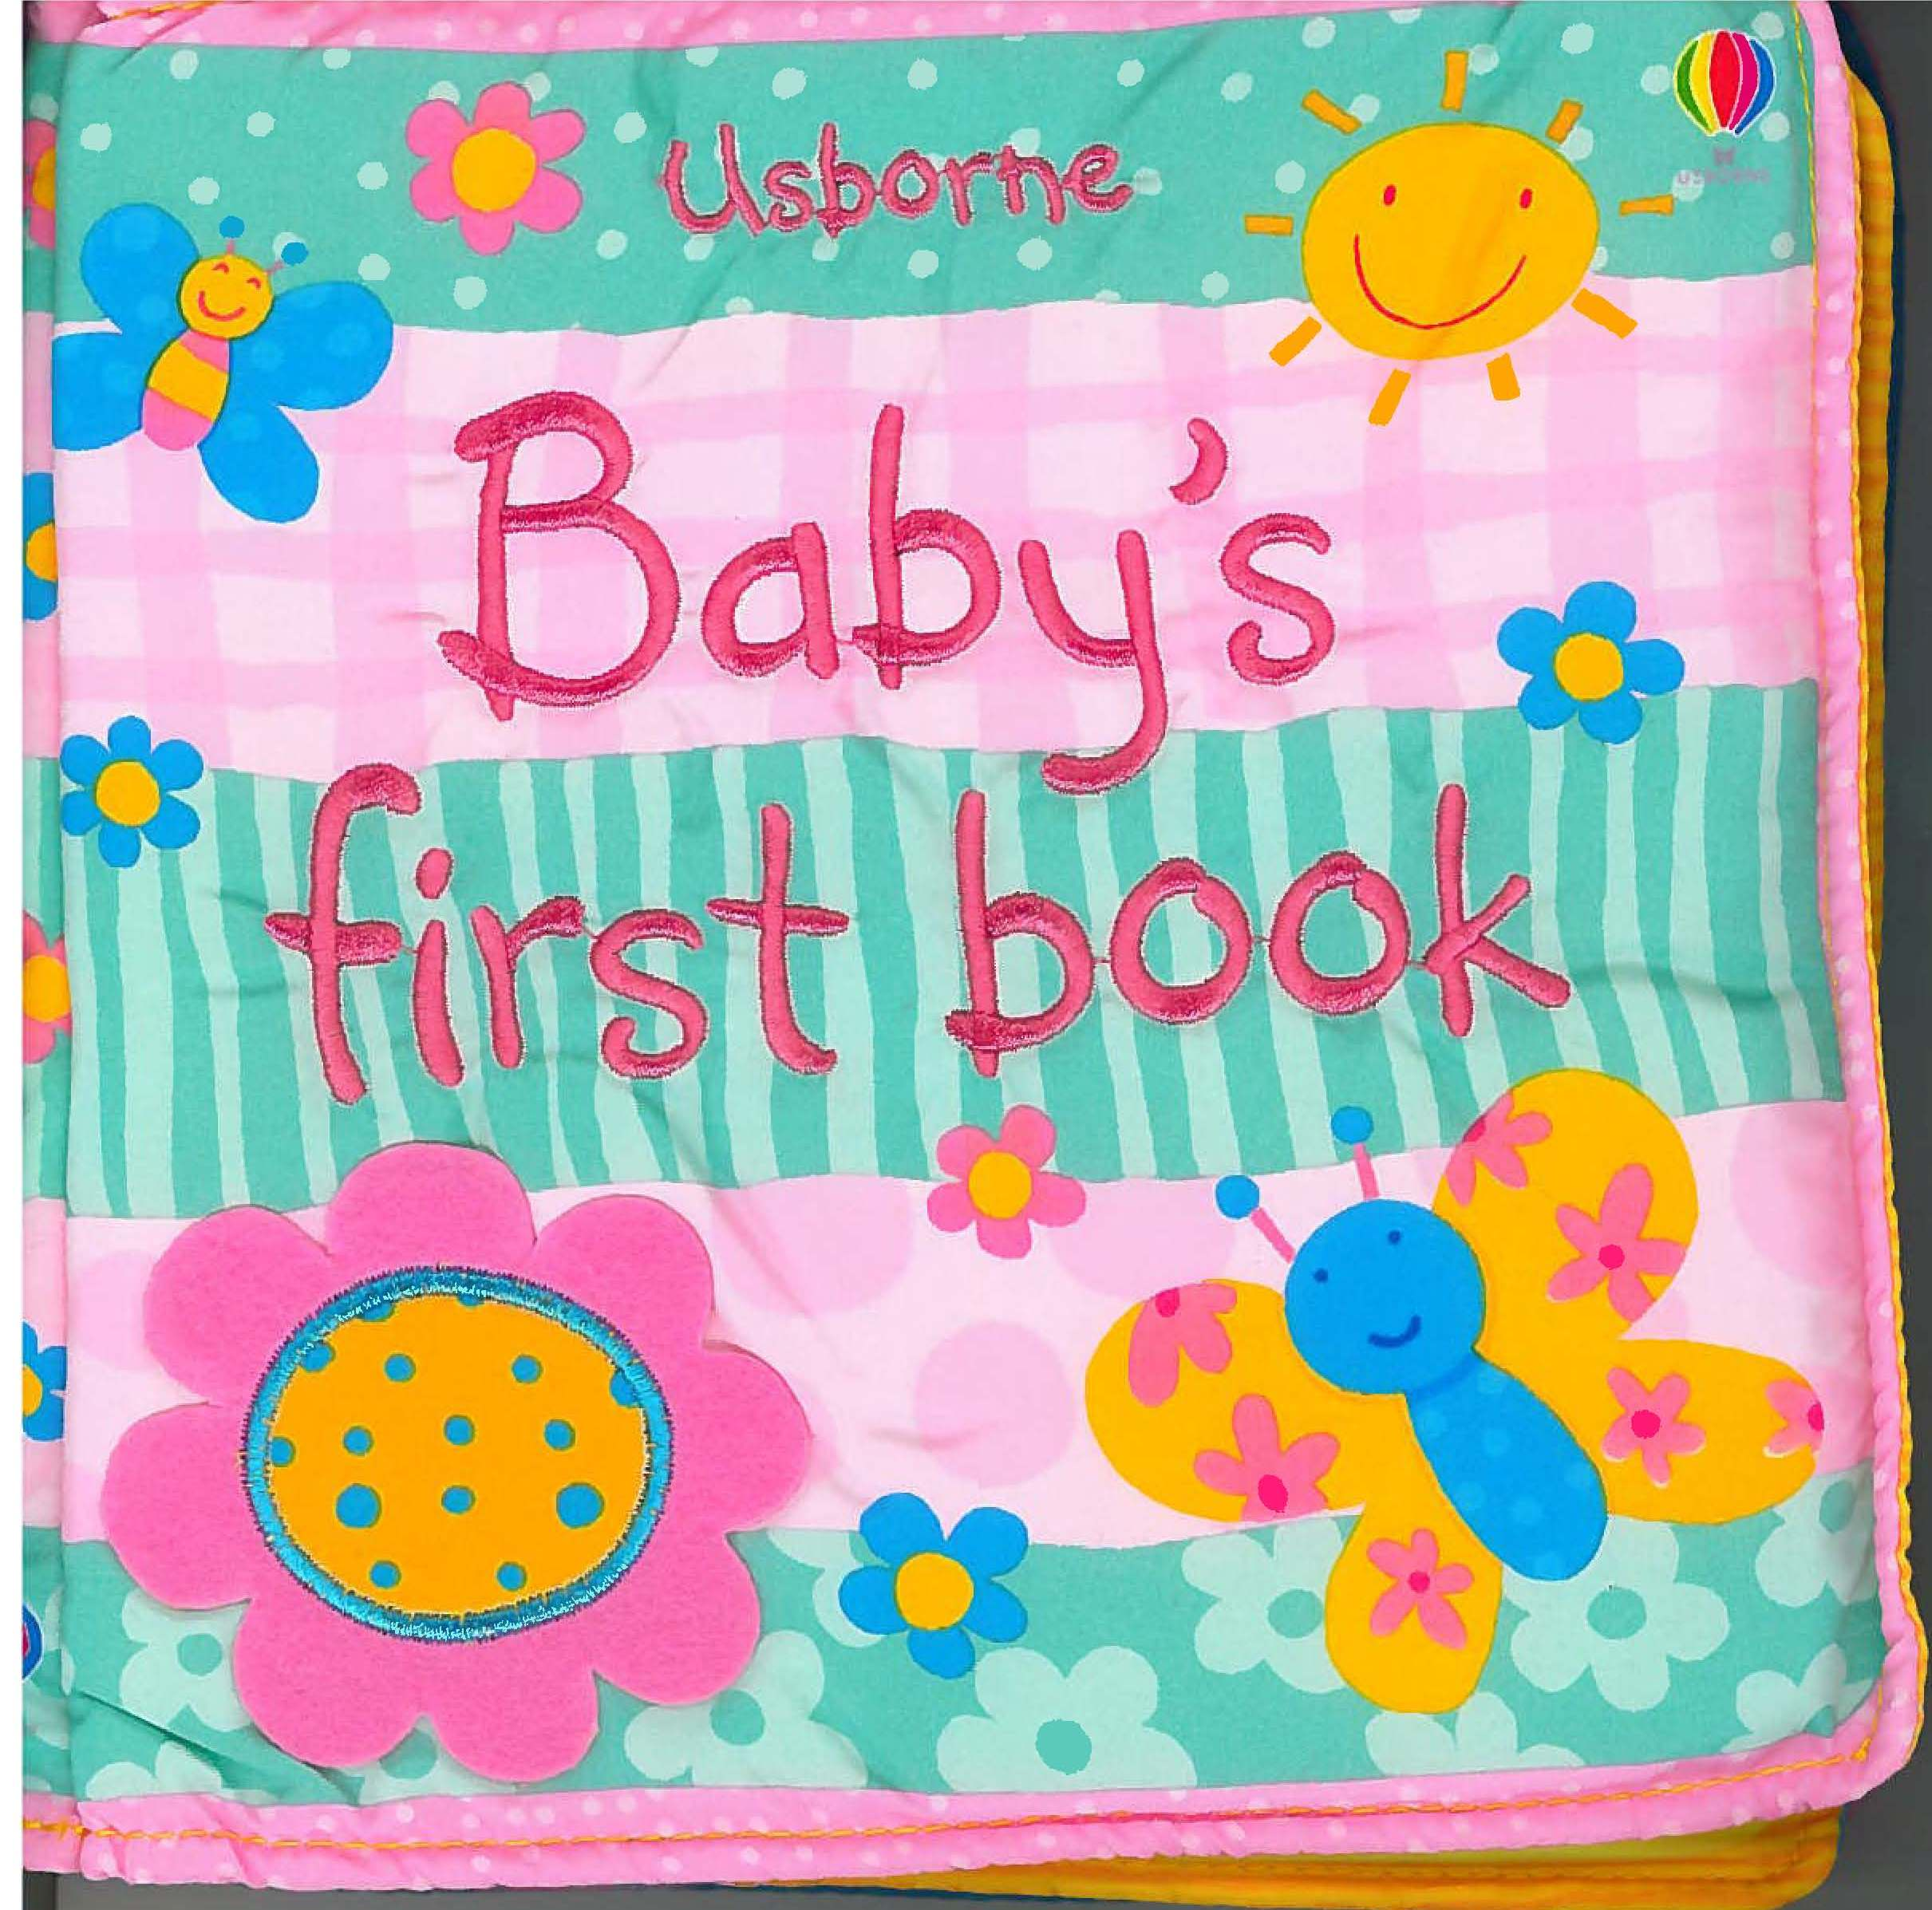 Baby's First Book (girls)